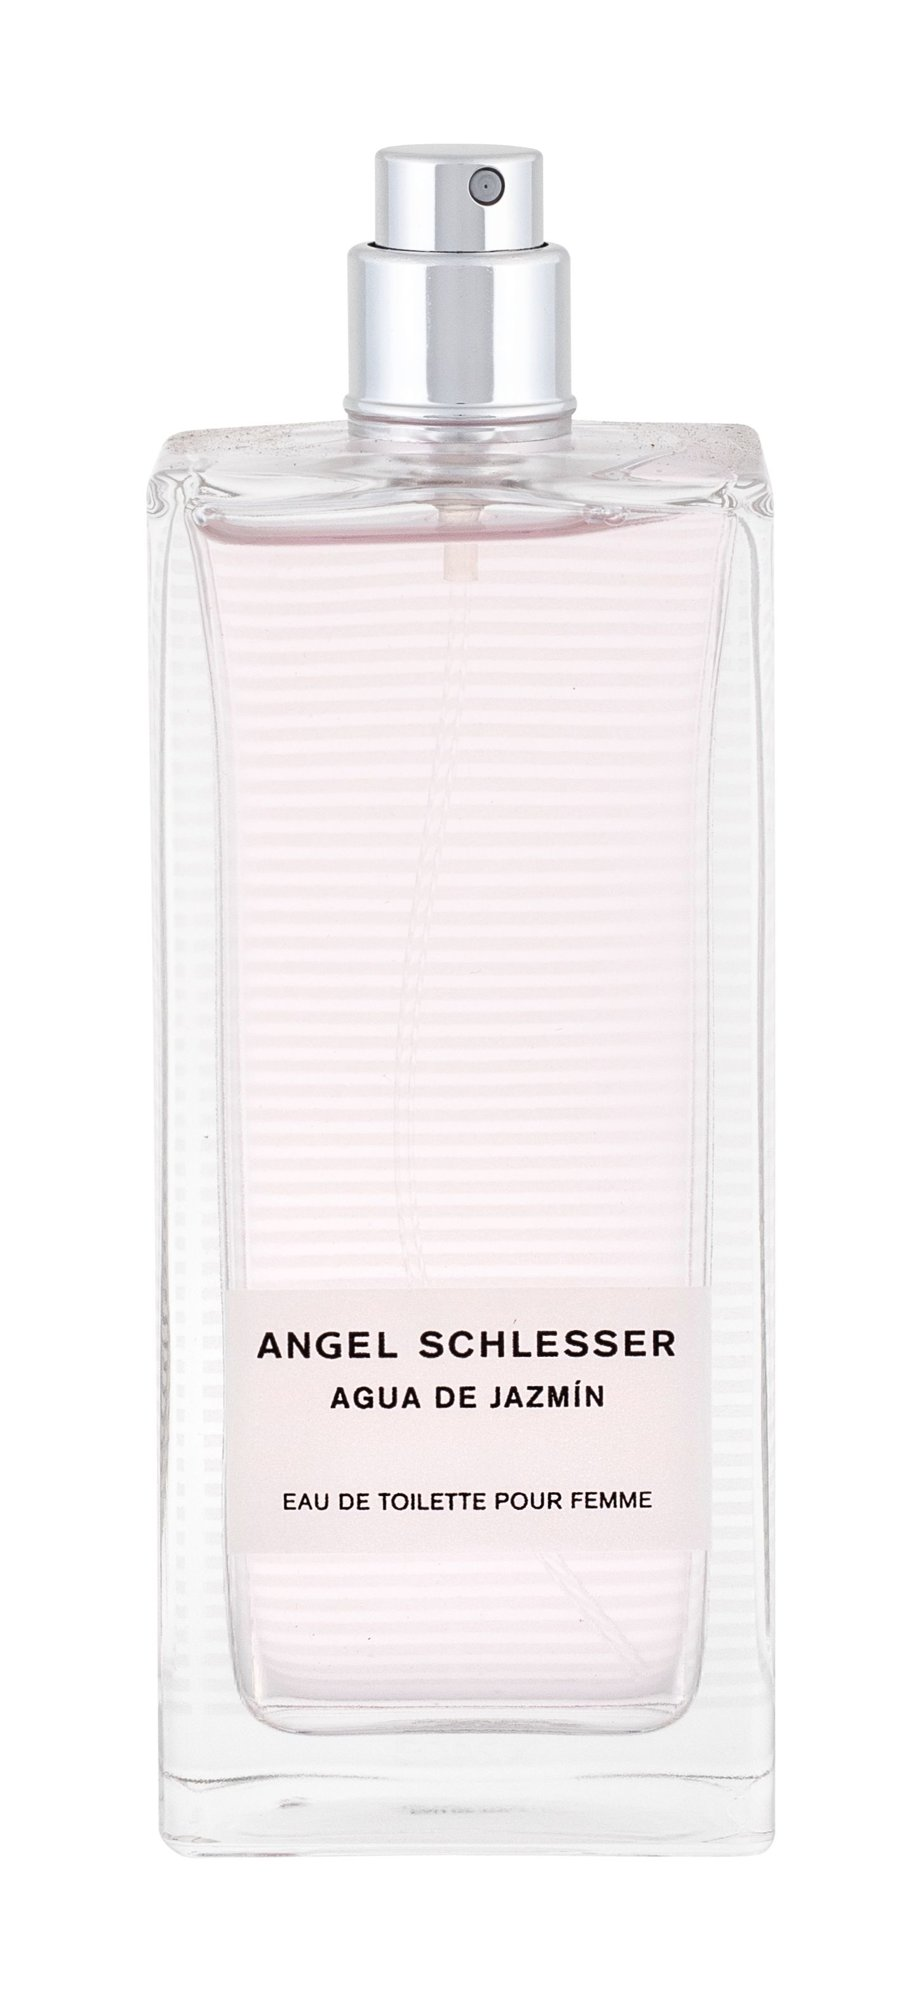 Angel Schlesser Agua de Jazmin EDT 100ml